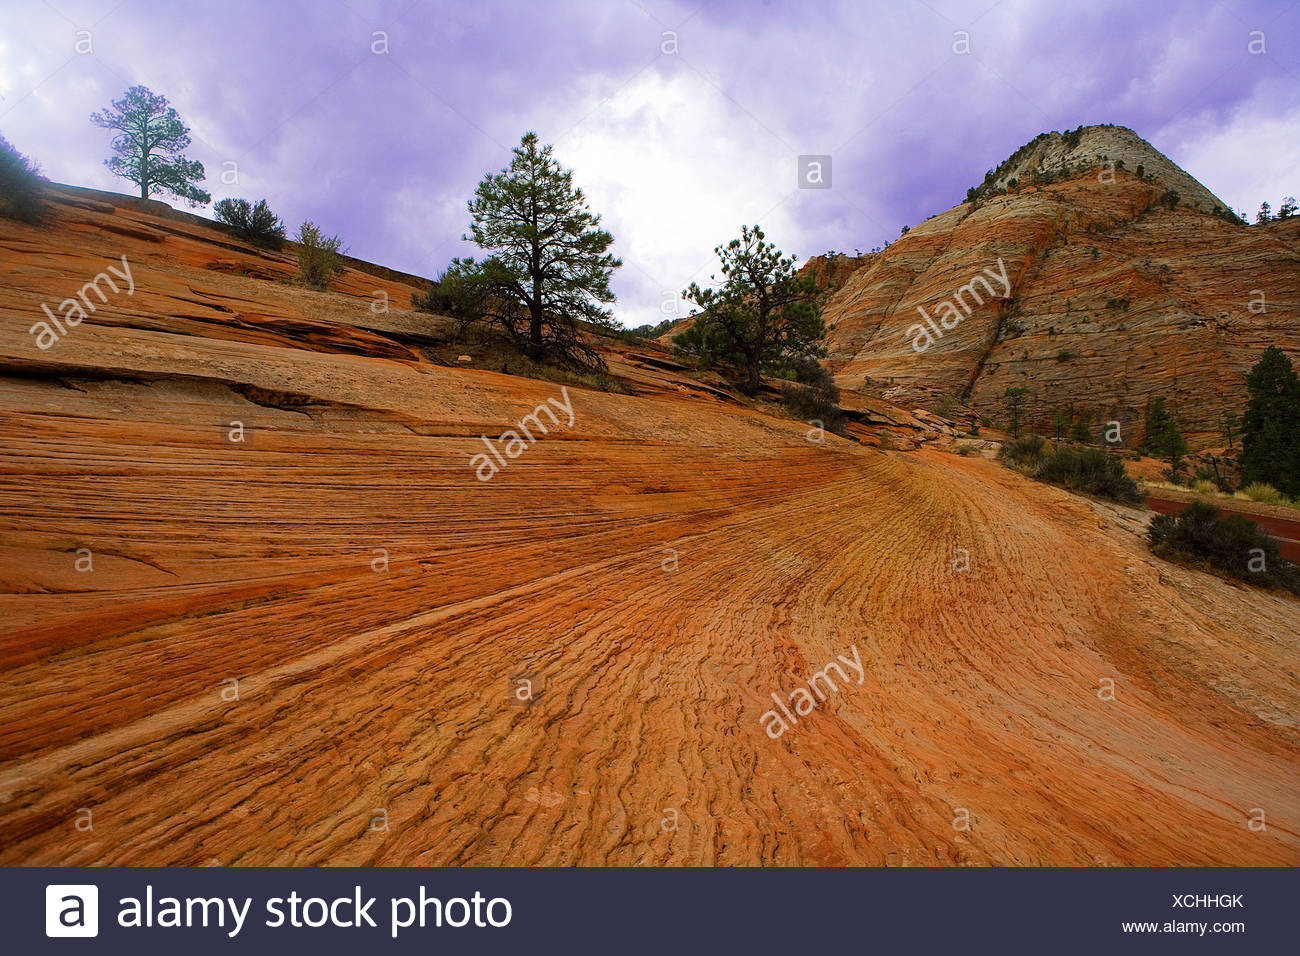 USA America United States North America Utah Zion national park scenery landscape rock cliff cliff scenery - Stock Image